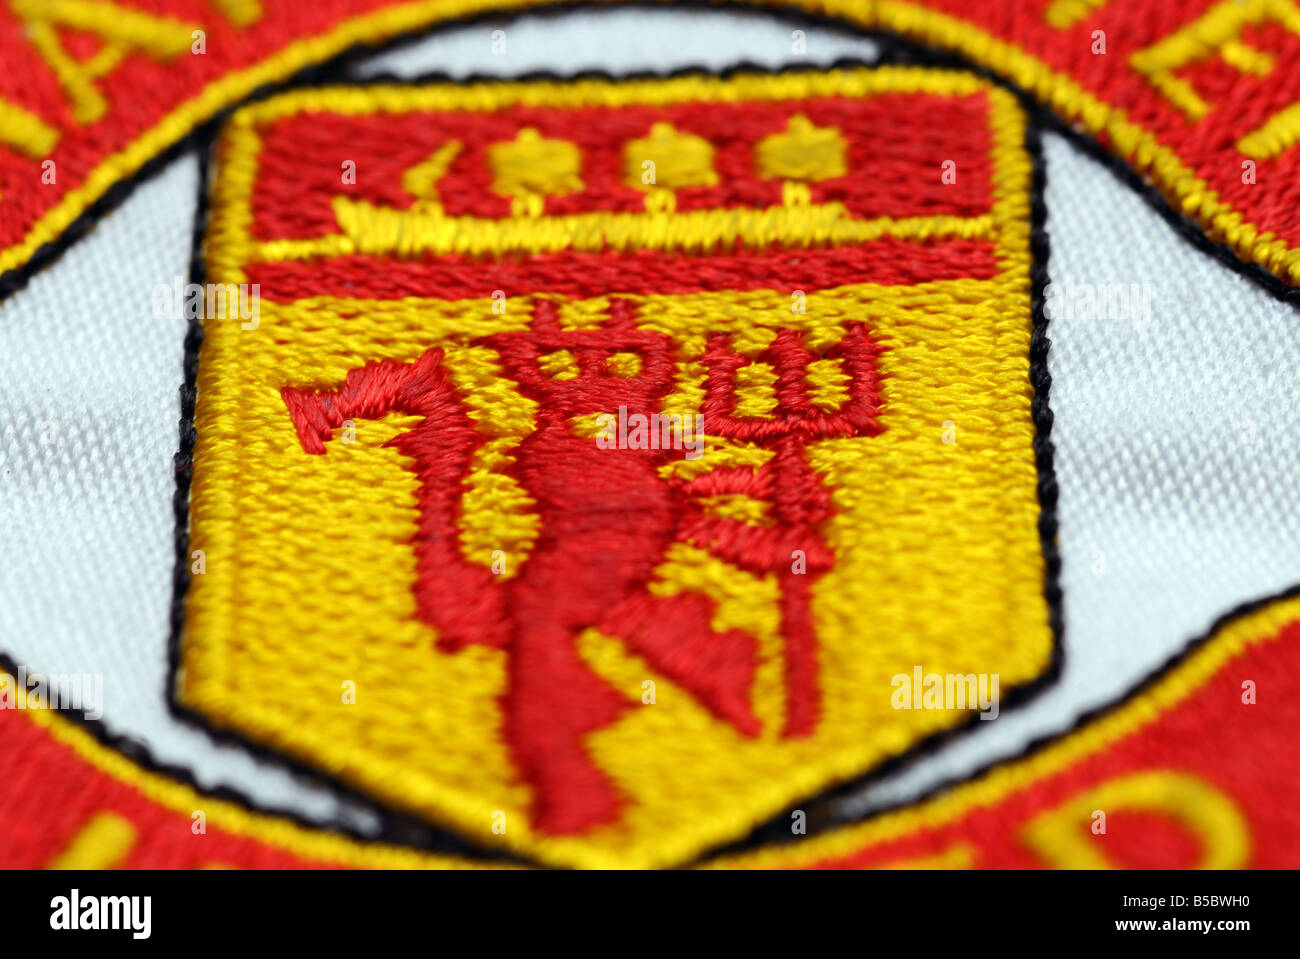 manchester united badge high resolution stock photography and images alamy https www alamy com stock photo manchester united badge 20545196 html